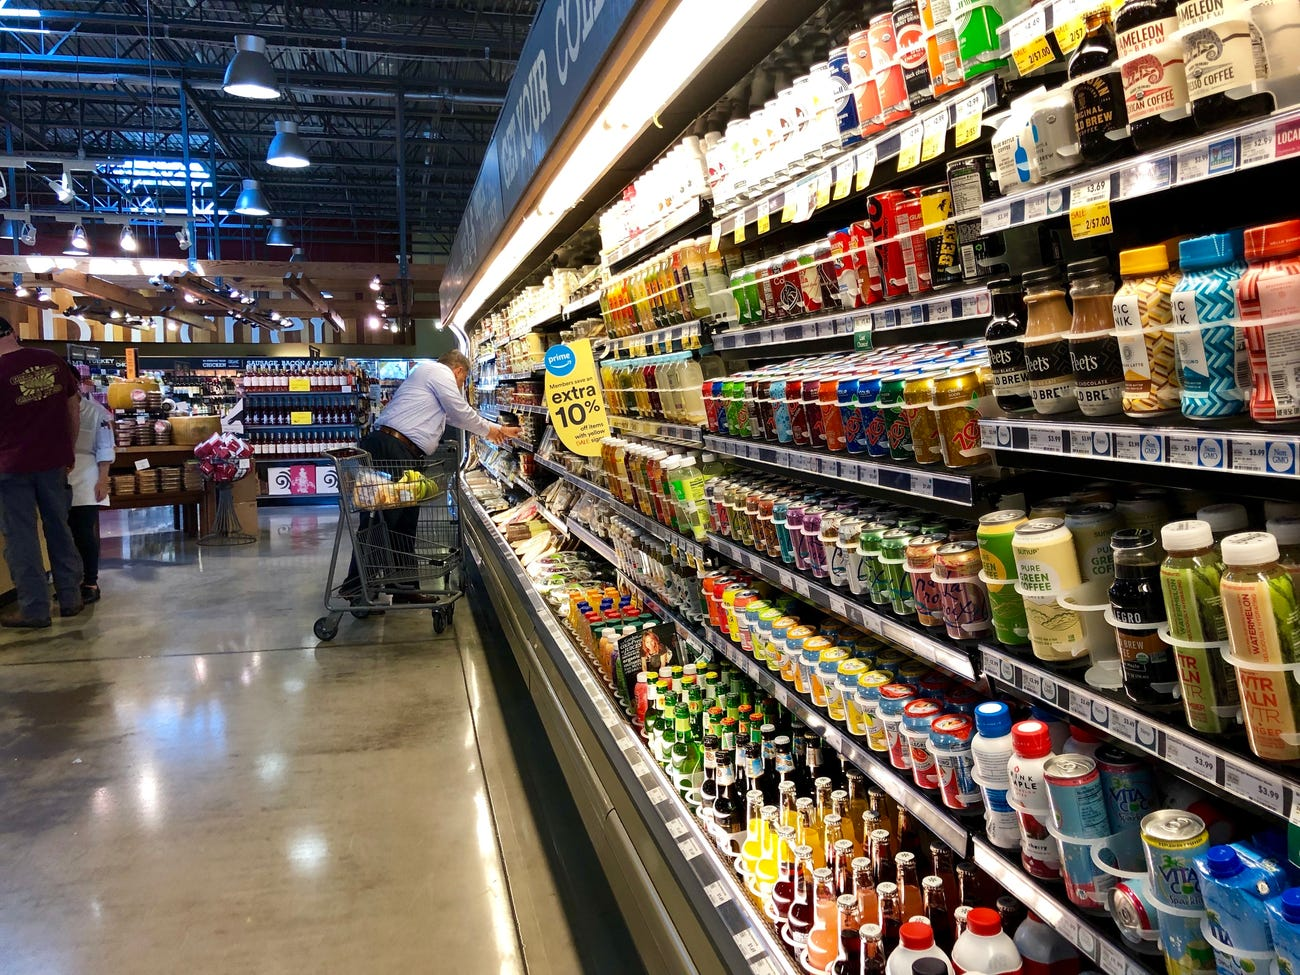 Amazon's Whole Foods reveals top food trends of 2020 | Business Insider